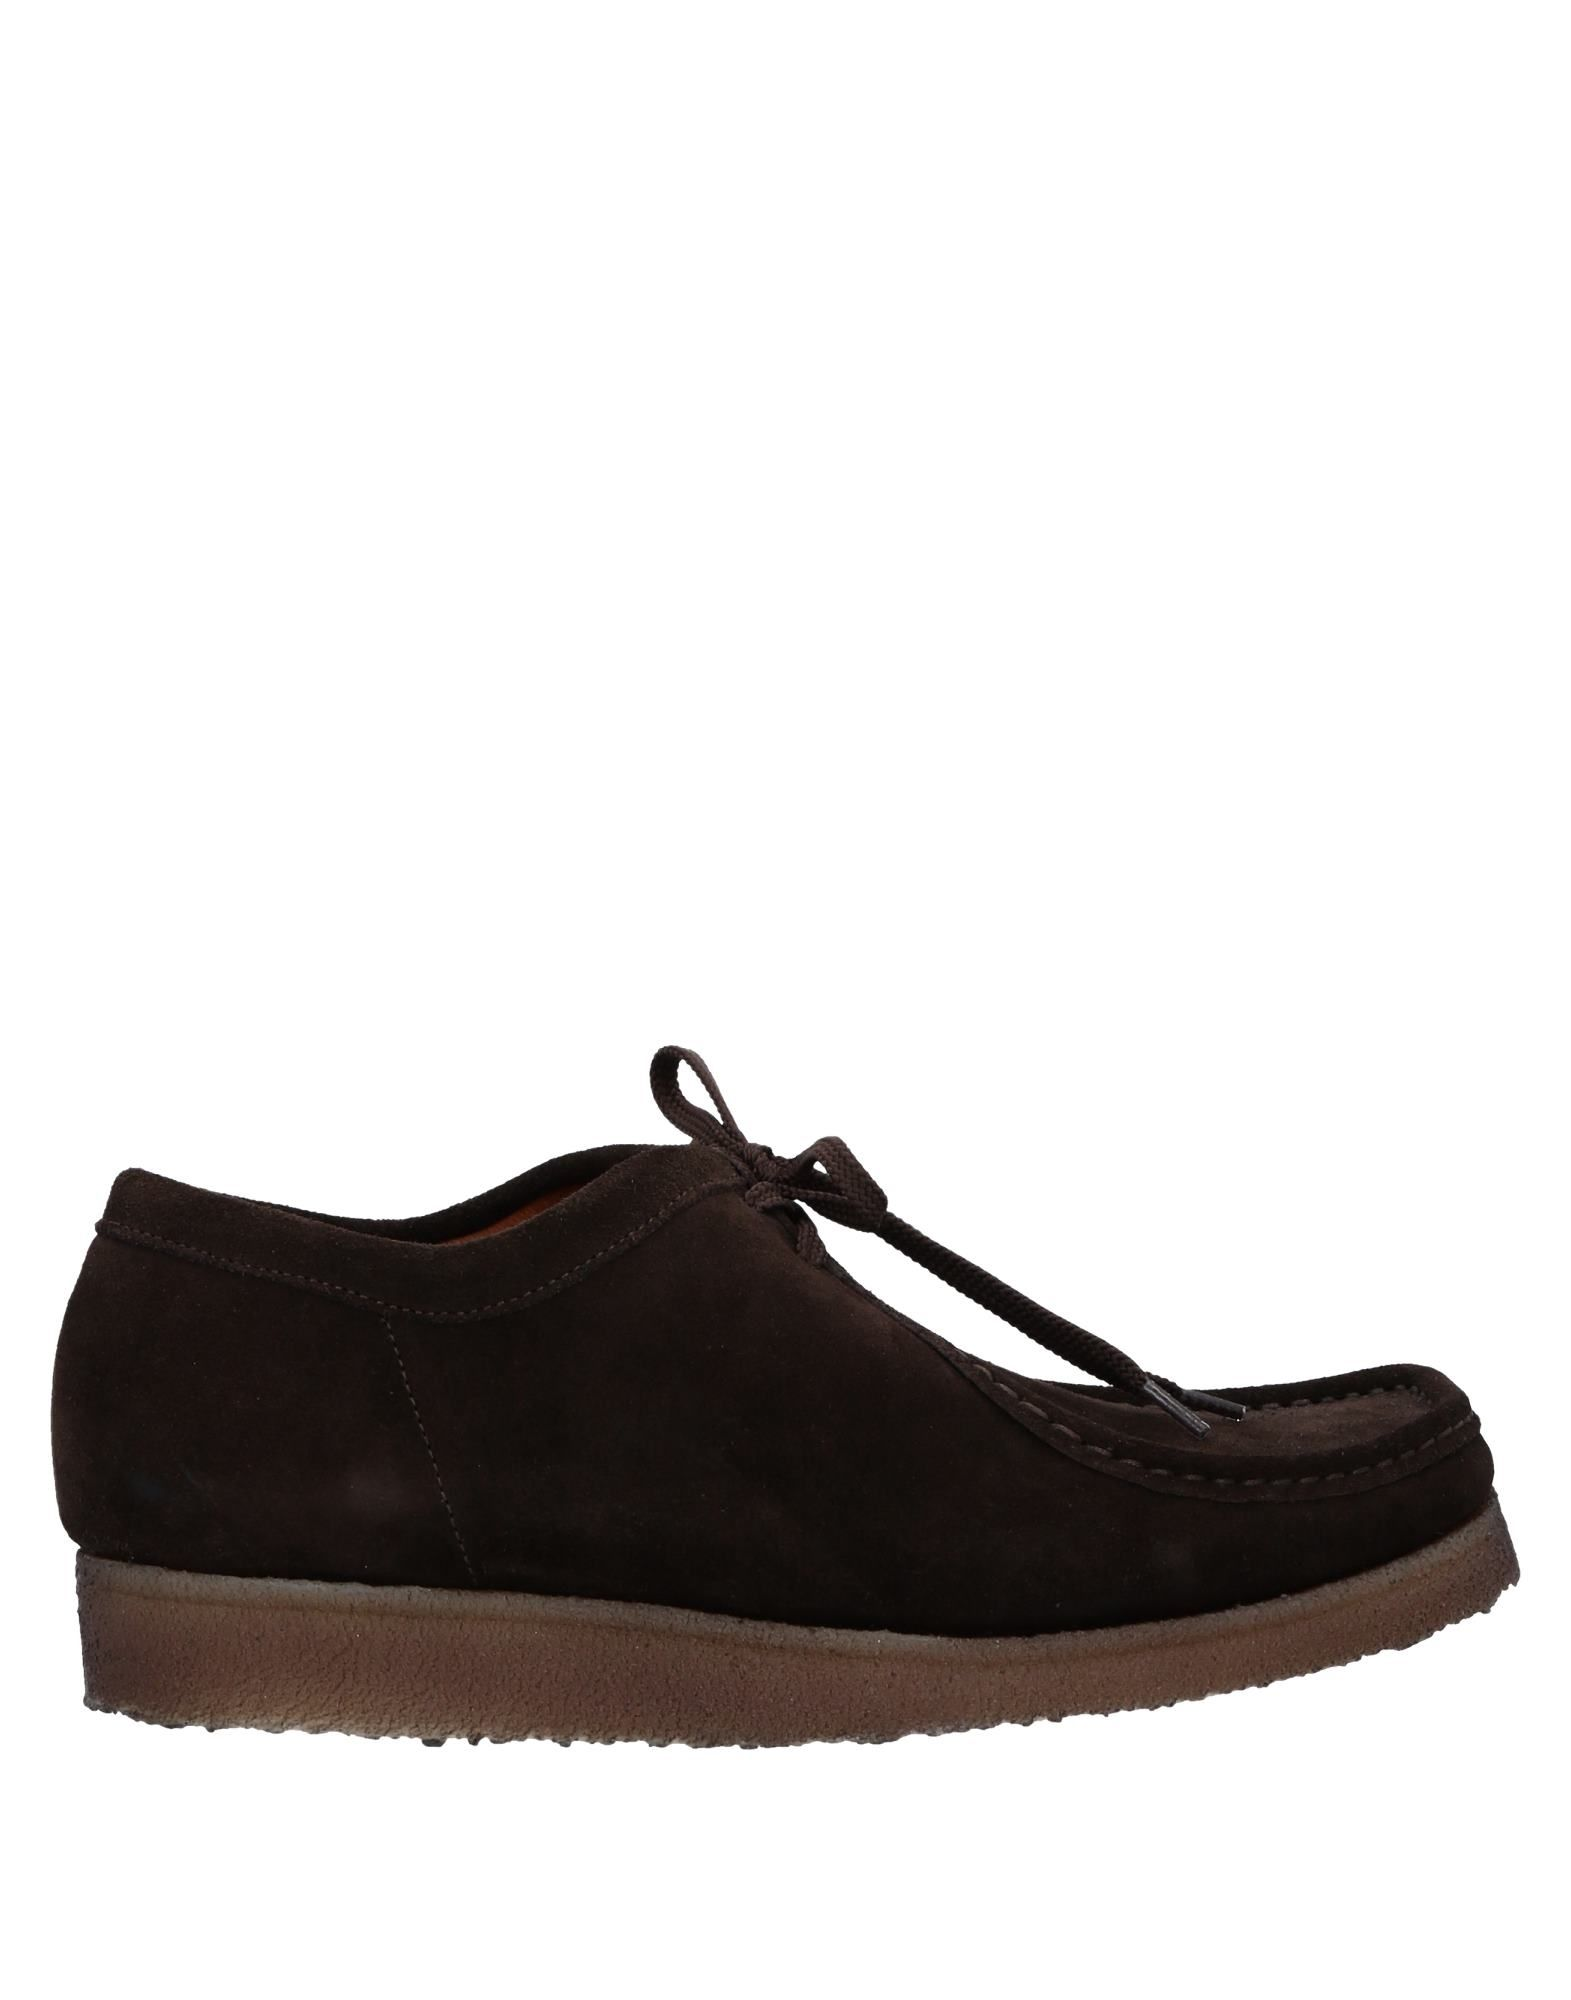 PADMORE & BARNES Laced Shoes in Dark Brown